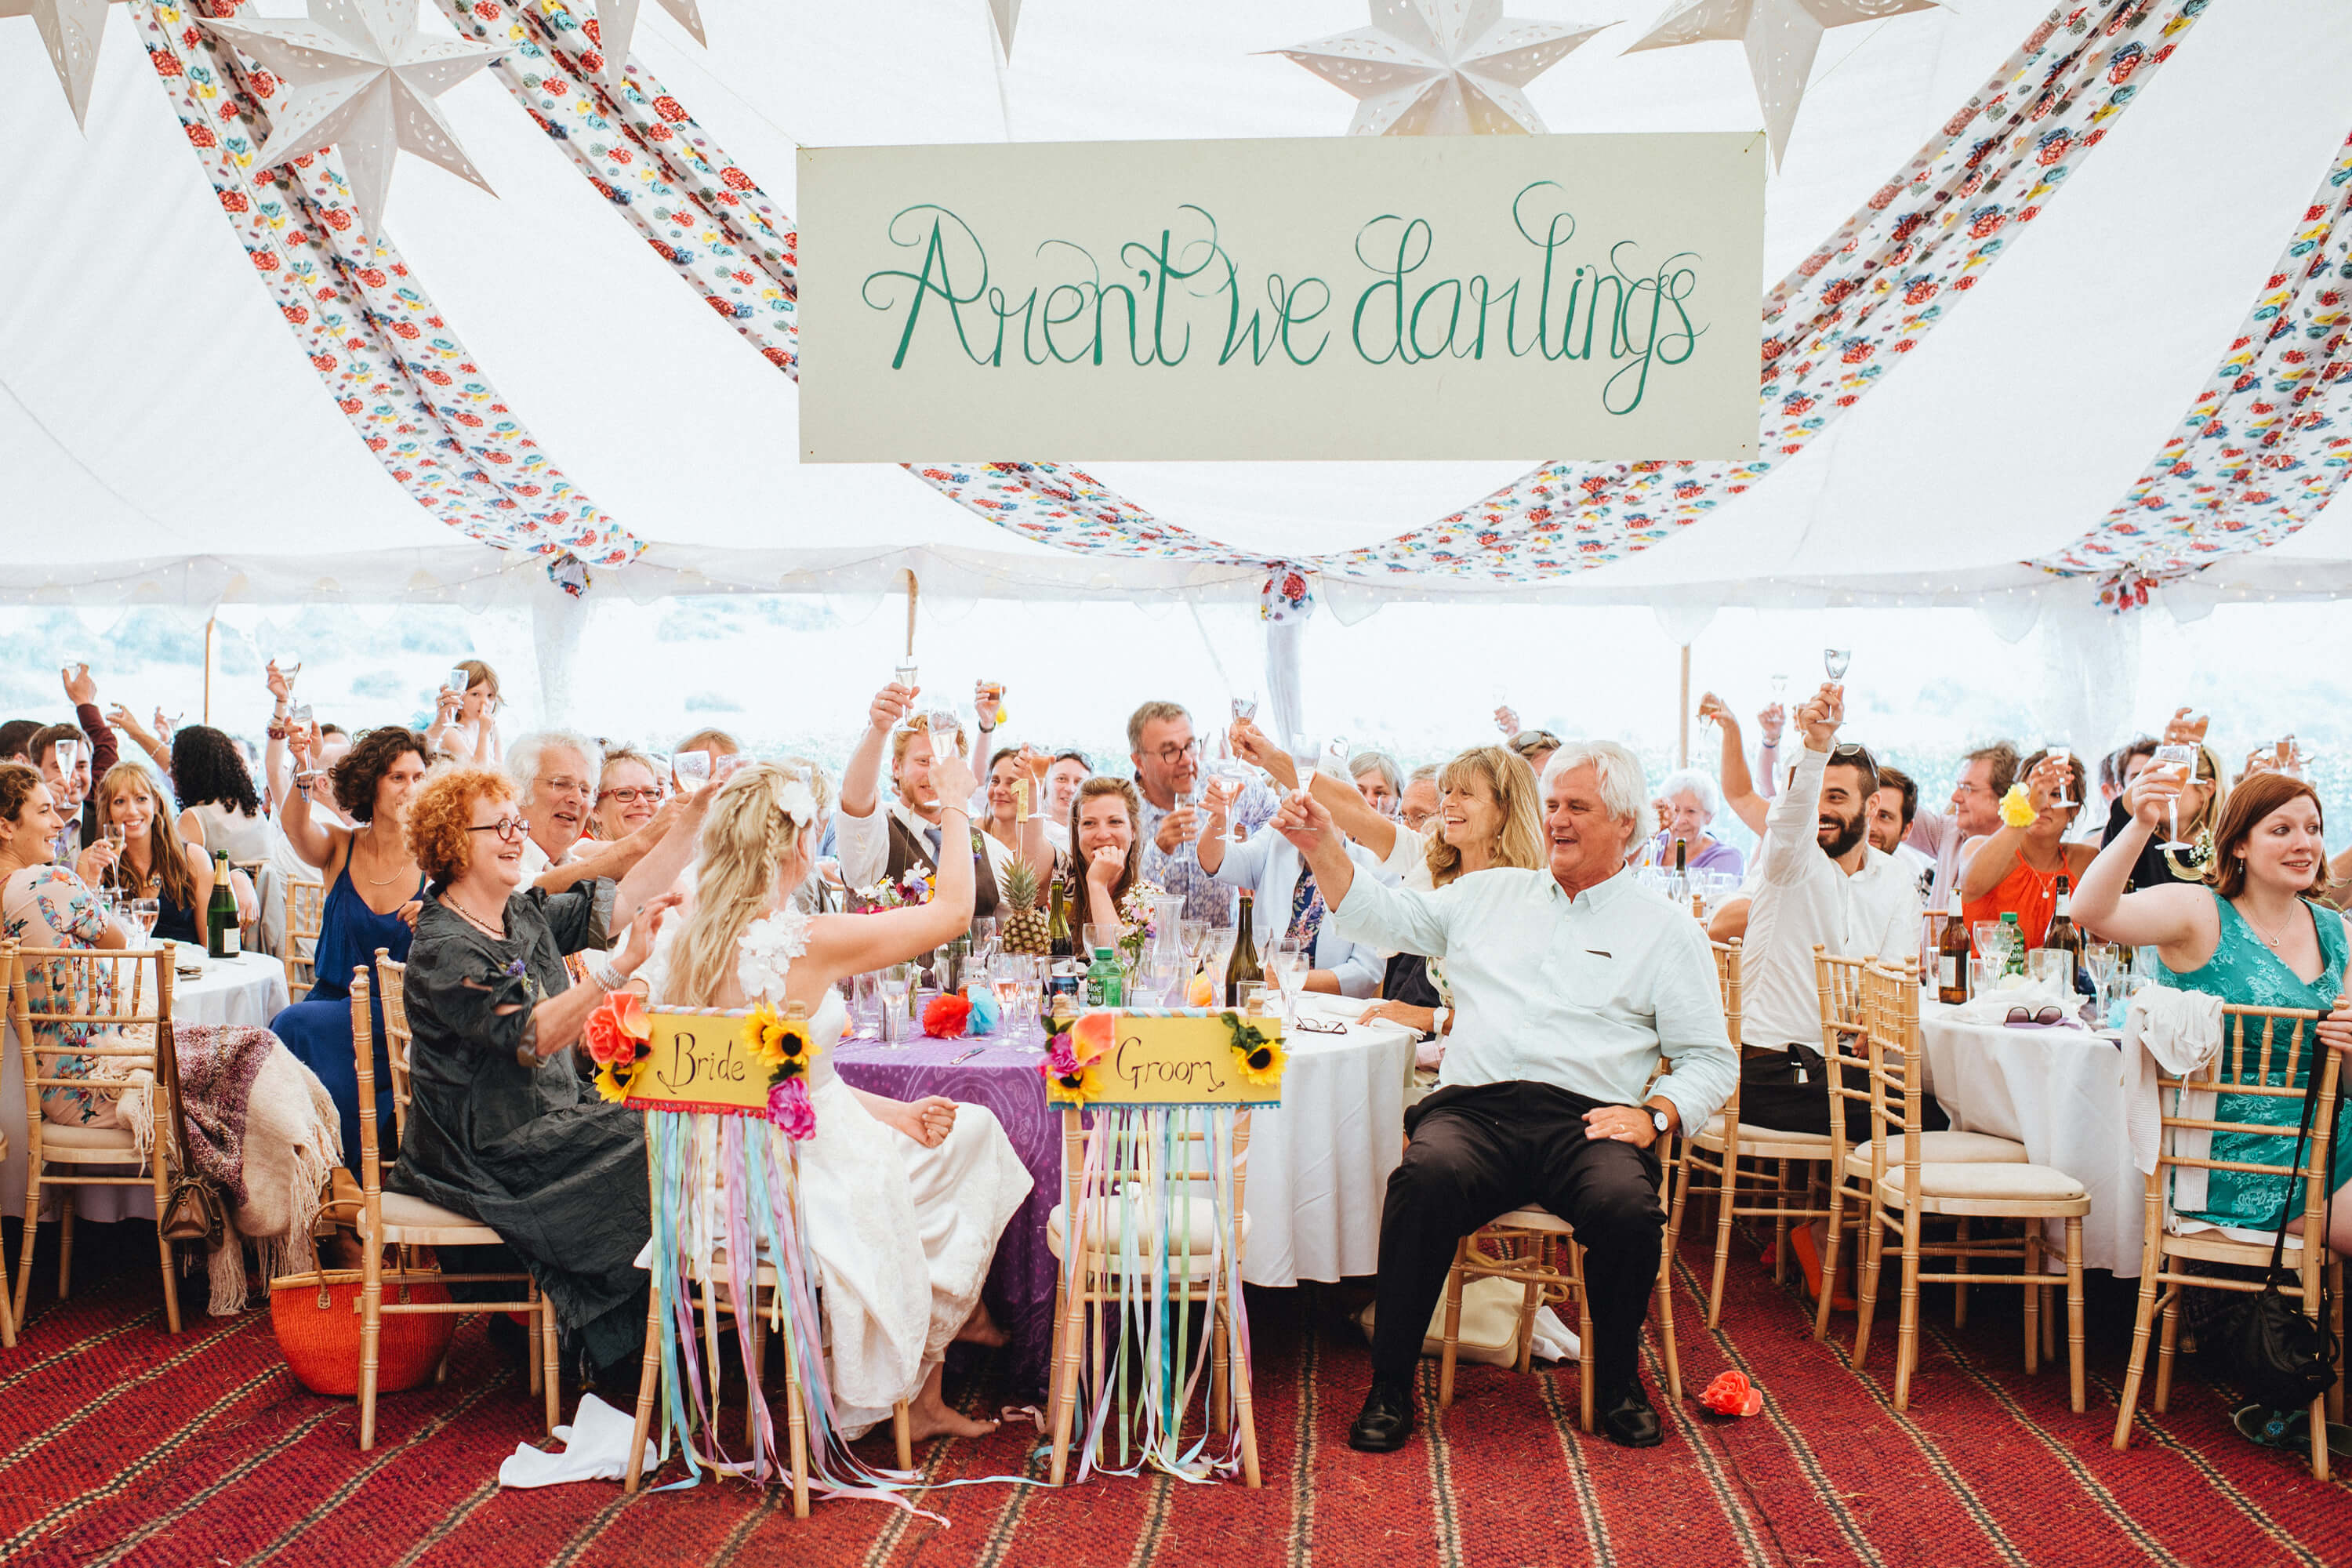 Unique Wedding Ideas - The Arabian Tent Company